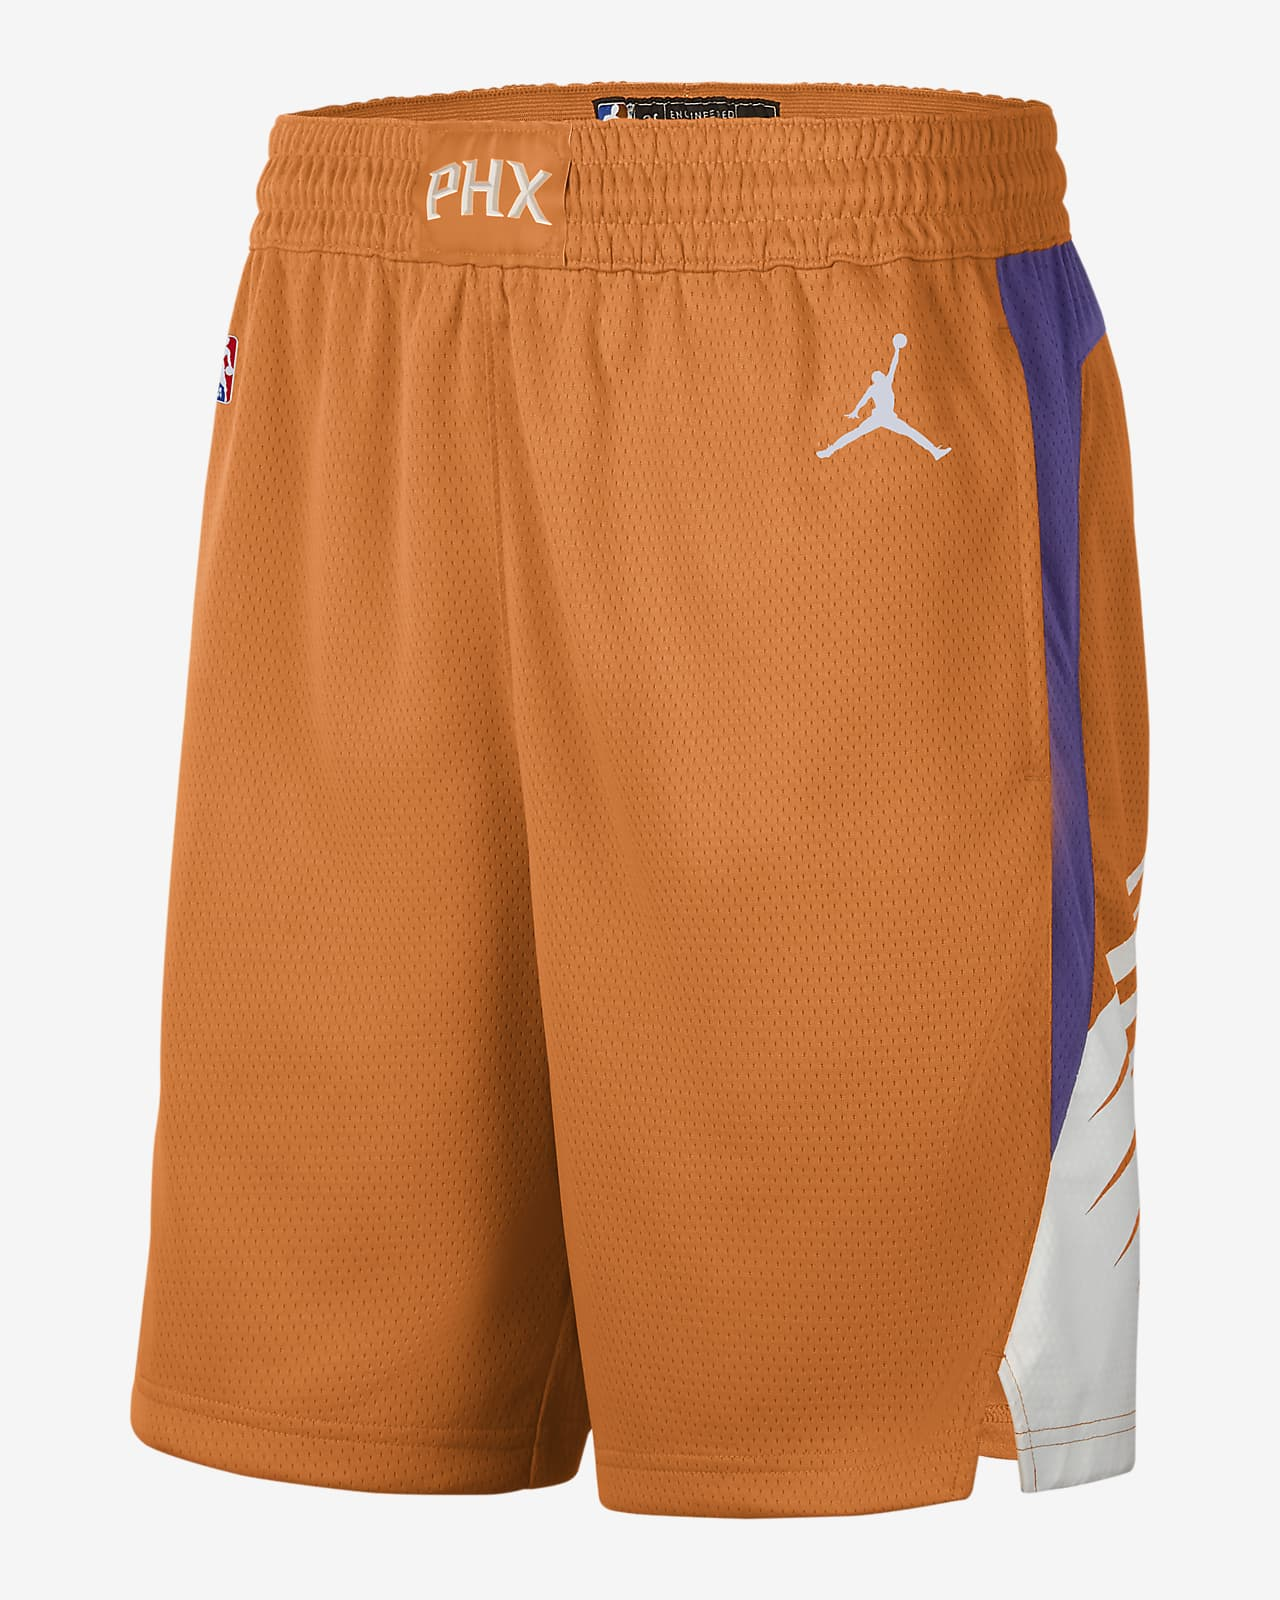 Suns Statement Edition 2020 Men's Jordan NBA Swingman Shorts